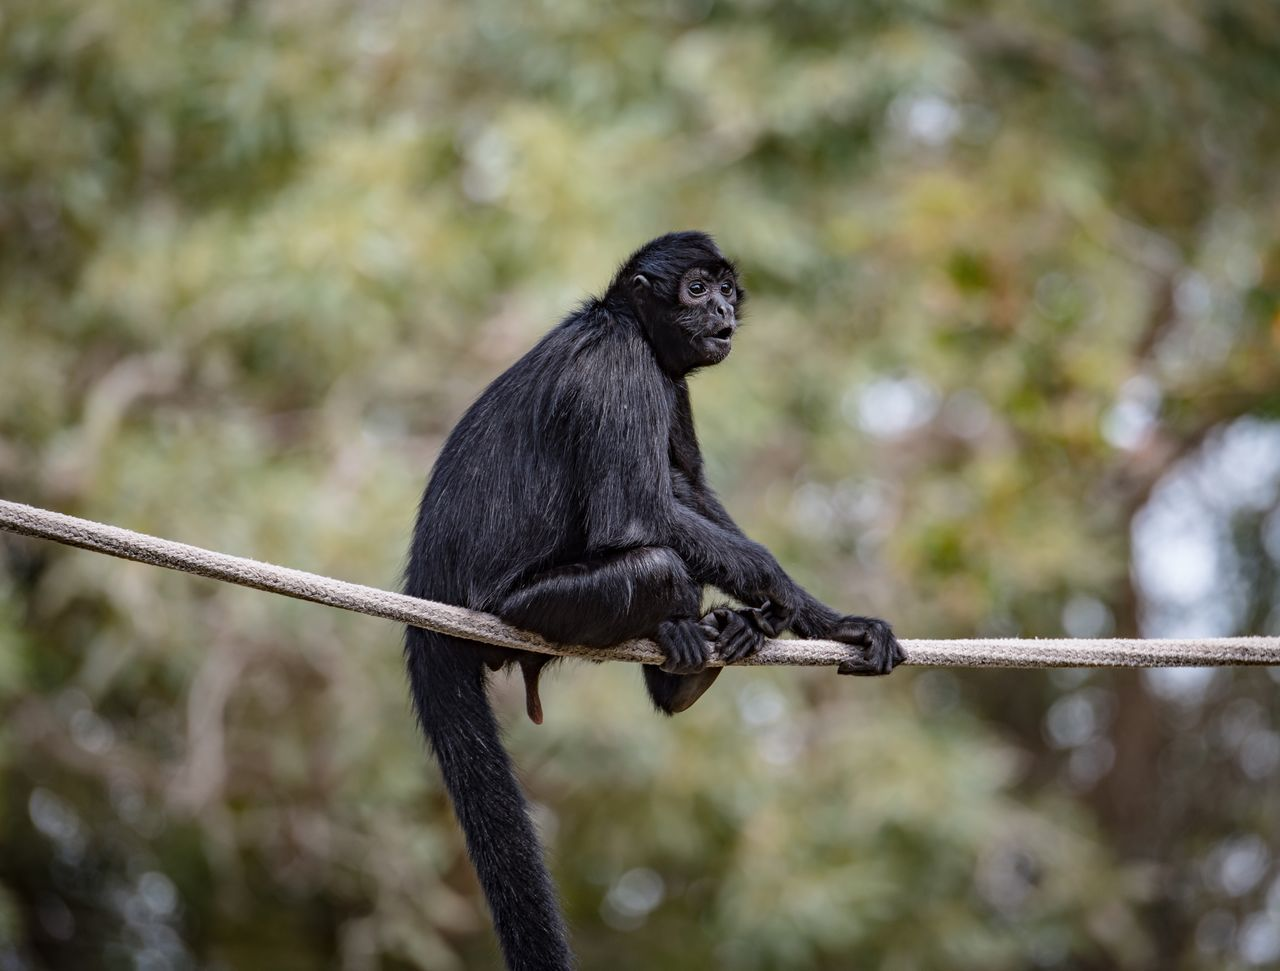 one animal, animal wildlife, animal themes, animals in the wild, no people, focus on foreground, monkey, mammal, outdoors, day, black color, nature, tree, full length, perching, close-up, bird